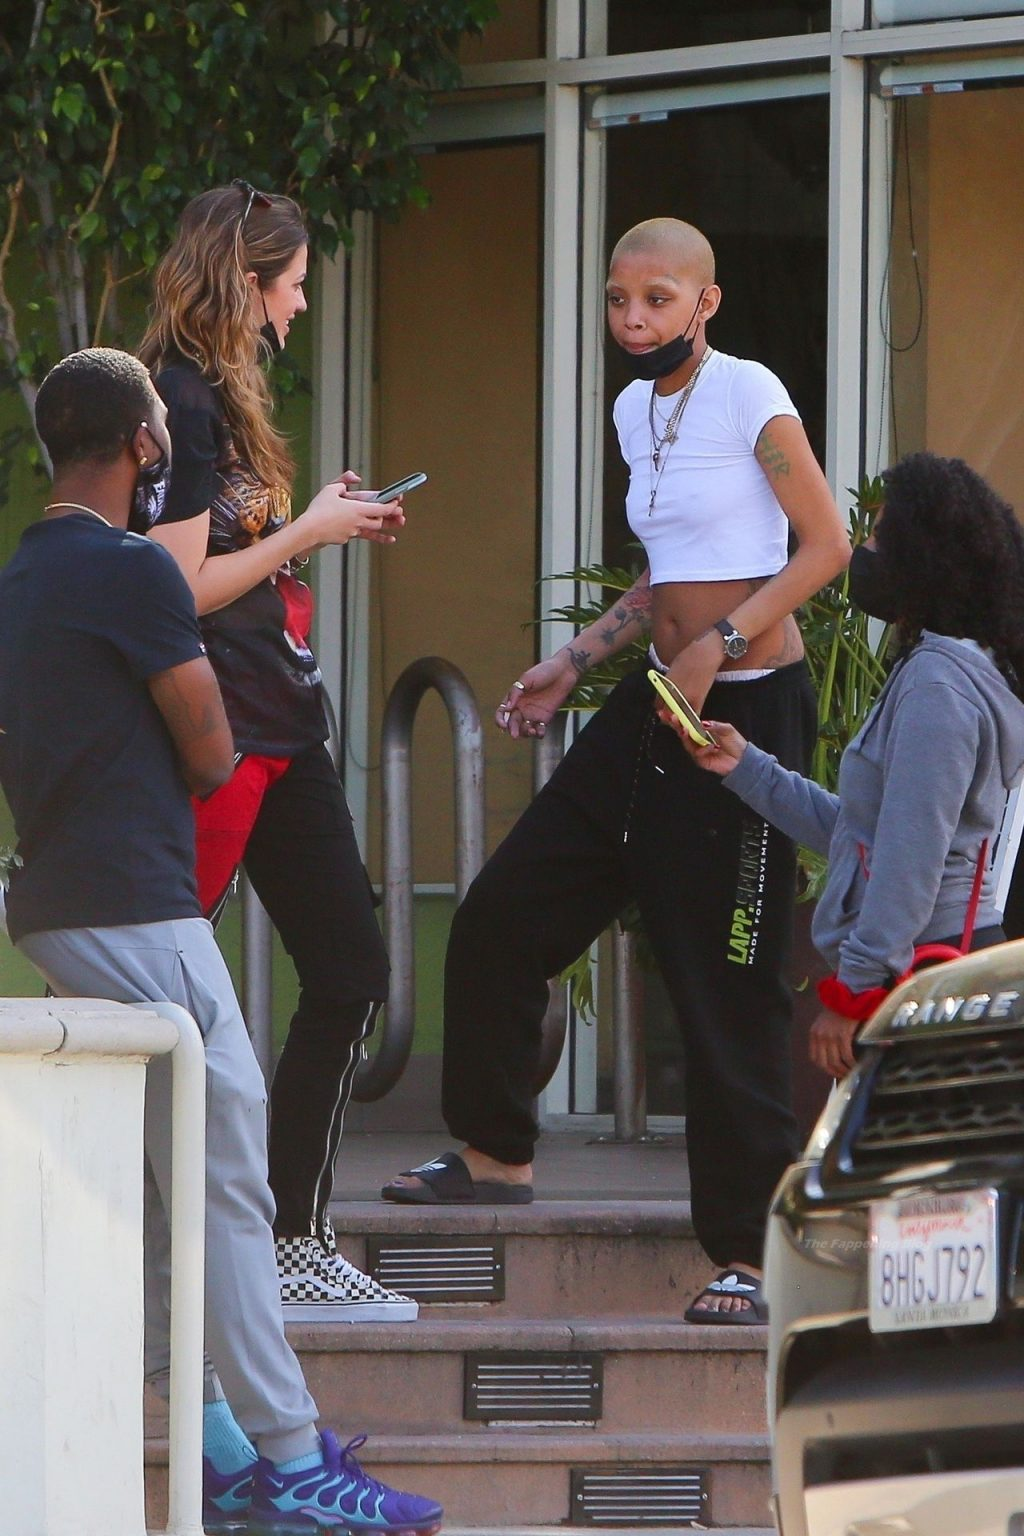 Braless Slick Woods is Pictured Socializing with Friends (22 Photos)